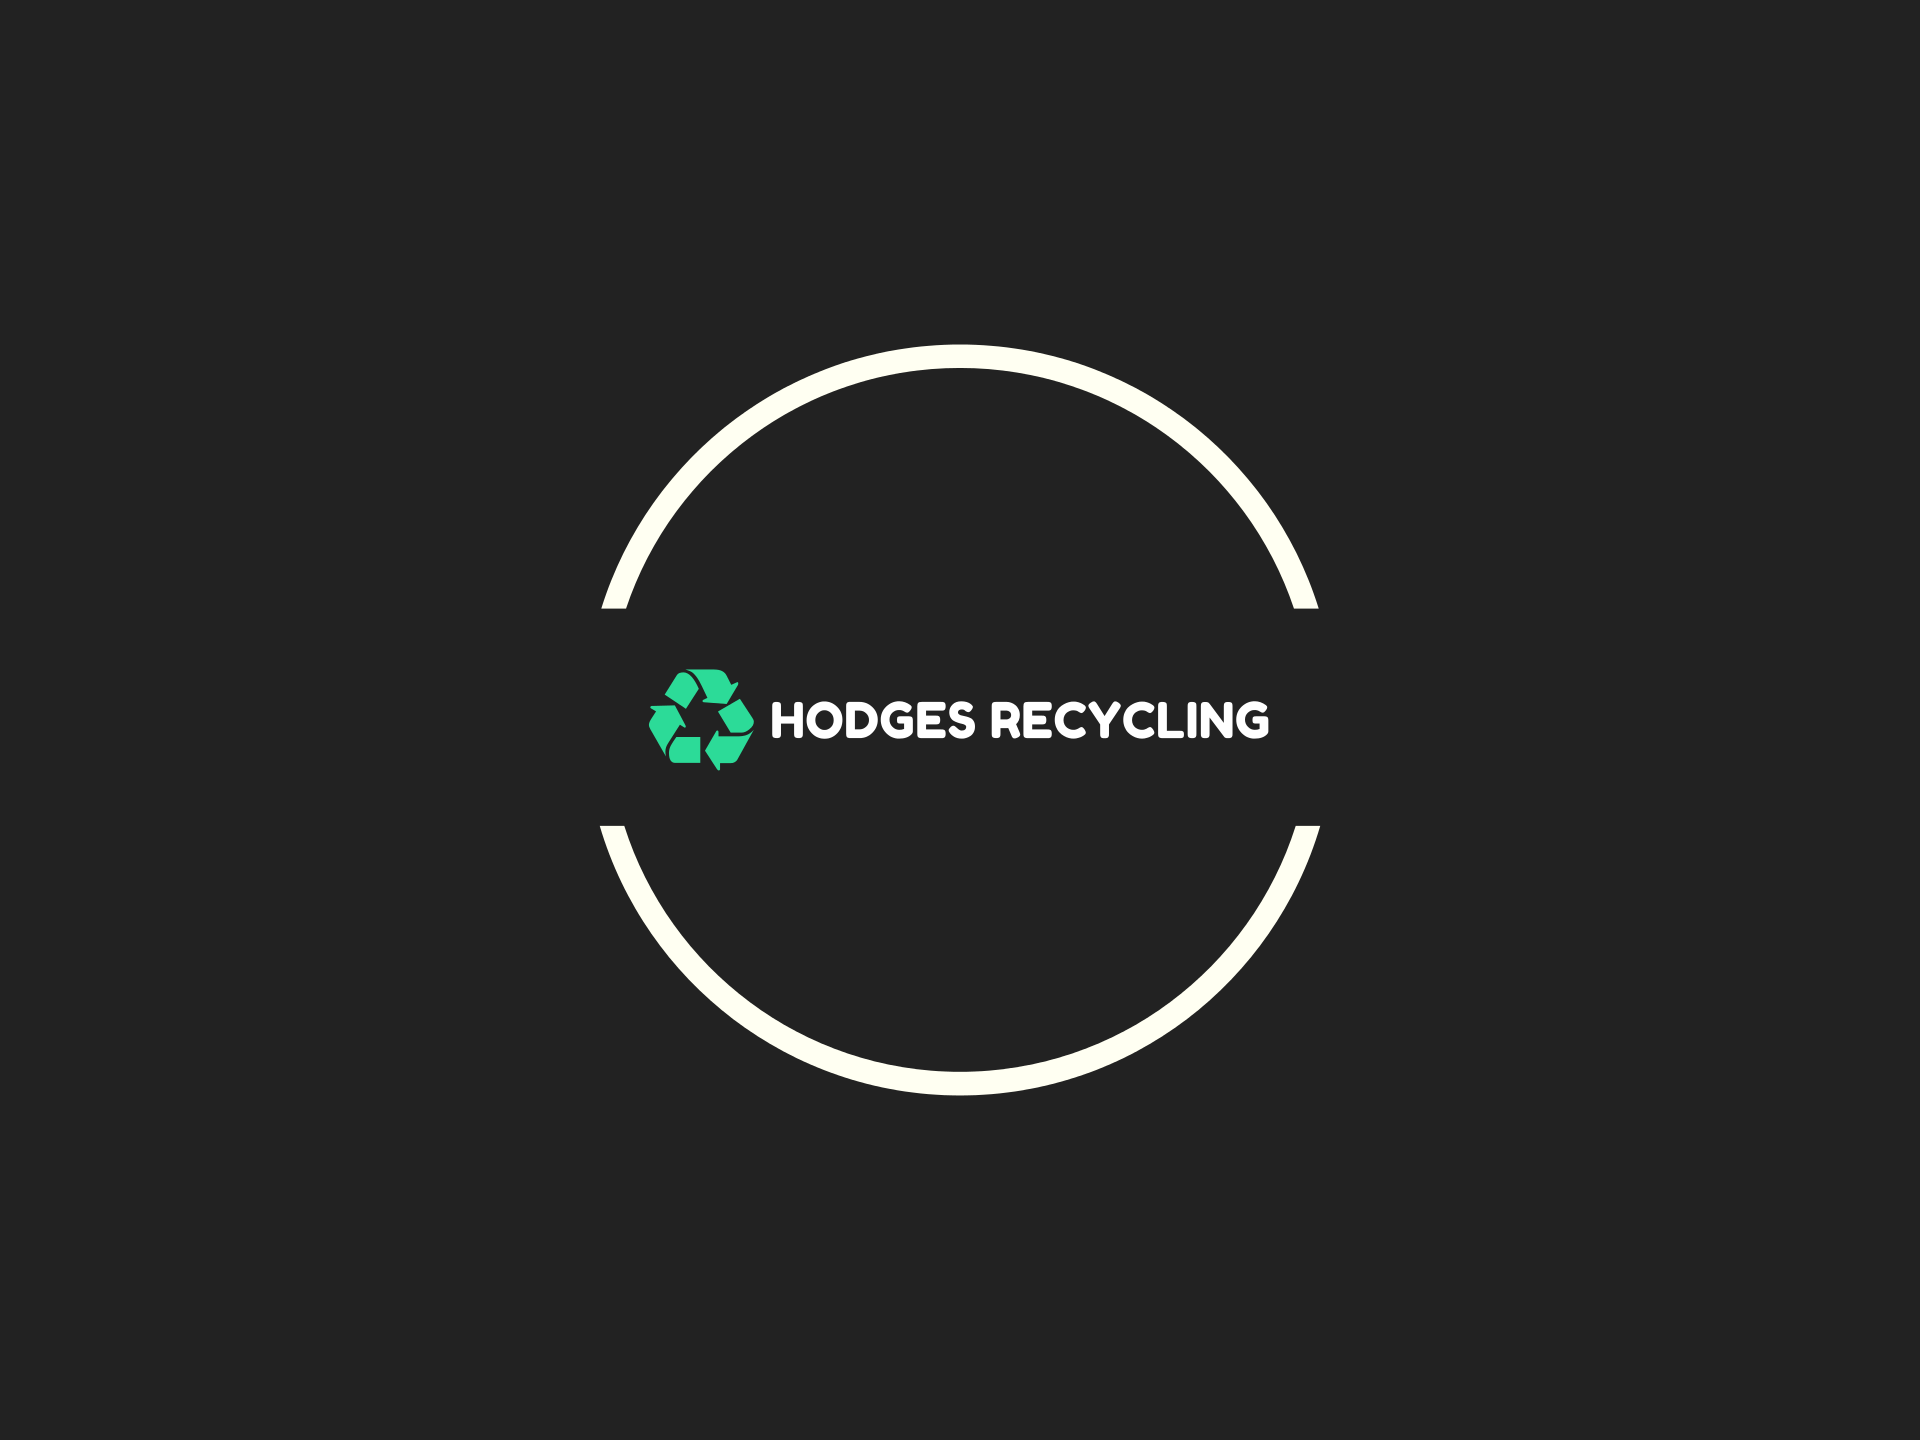 Hodges Recycling